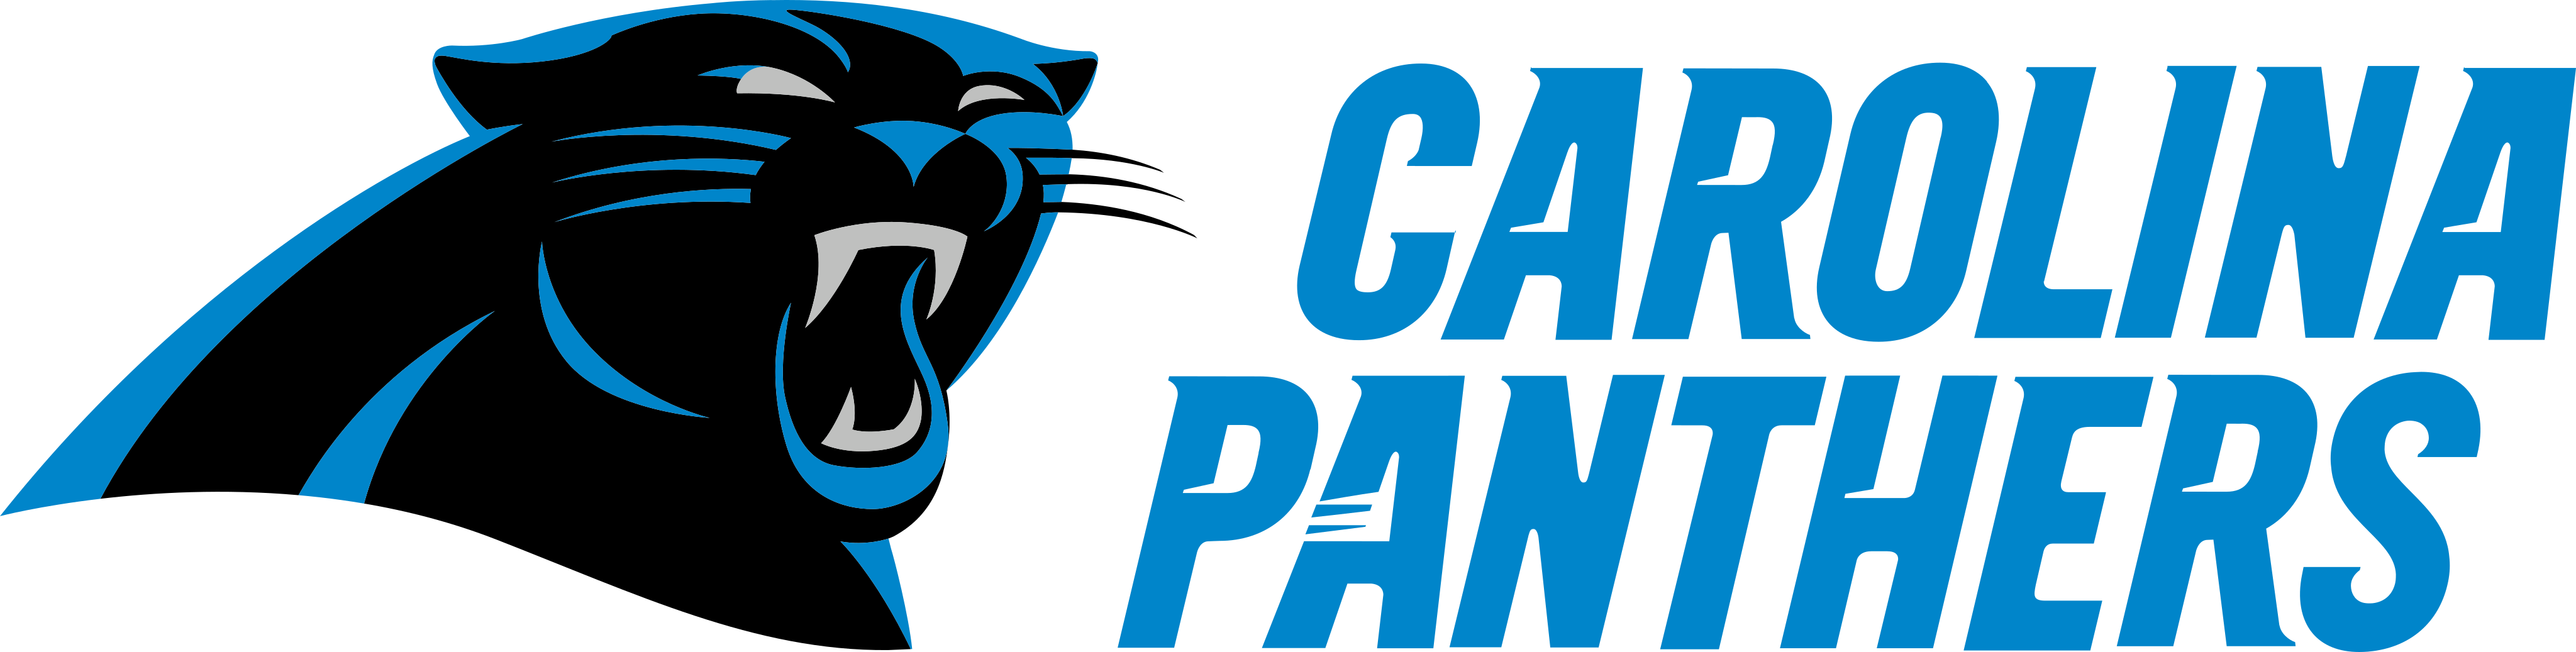 Carolina Panthers Logo.